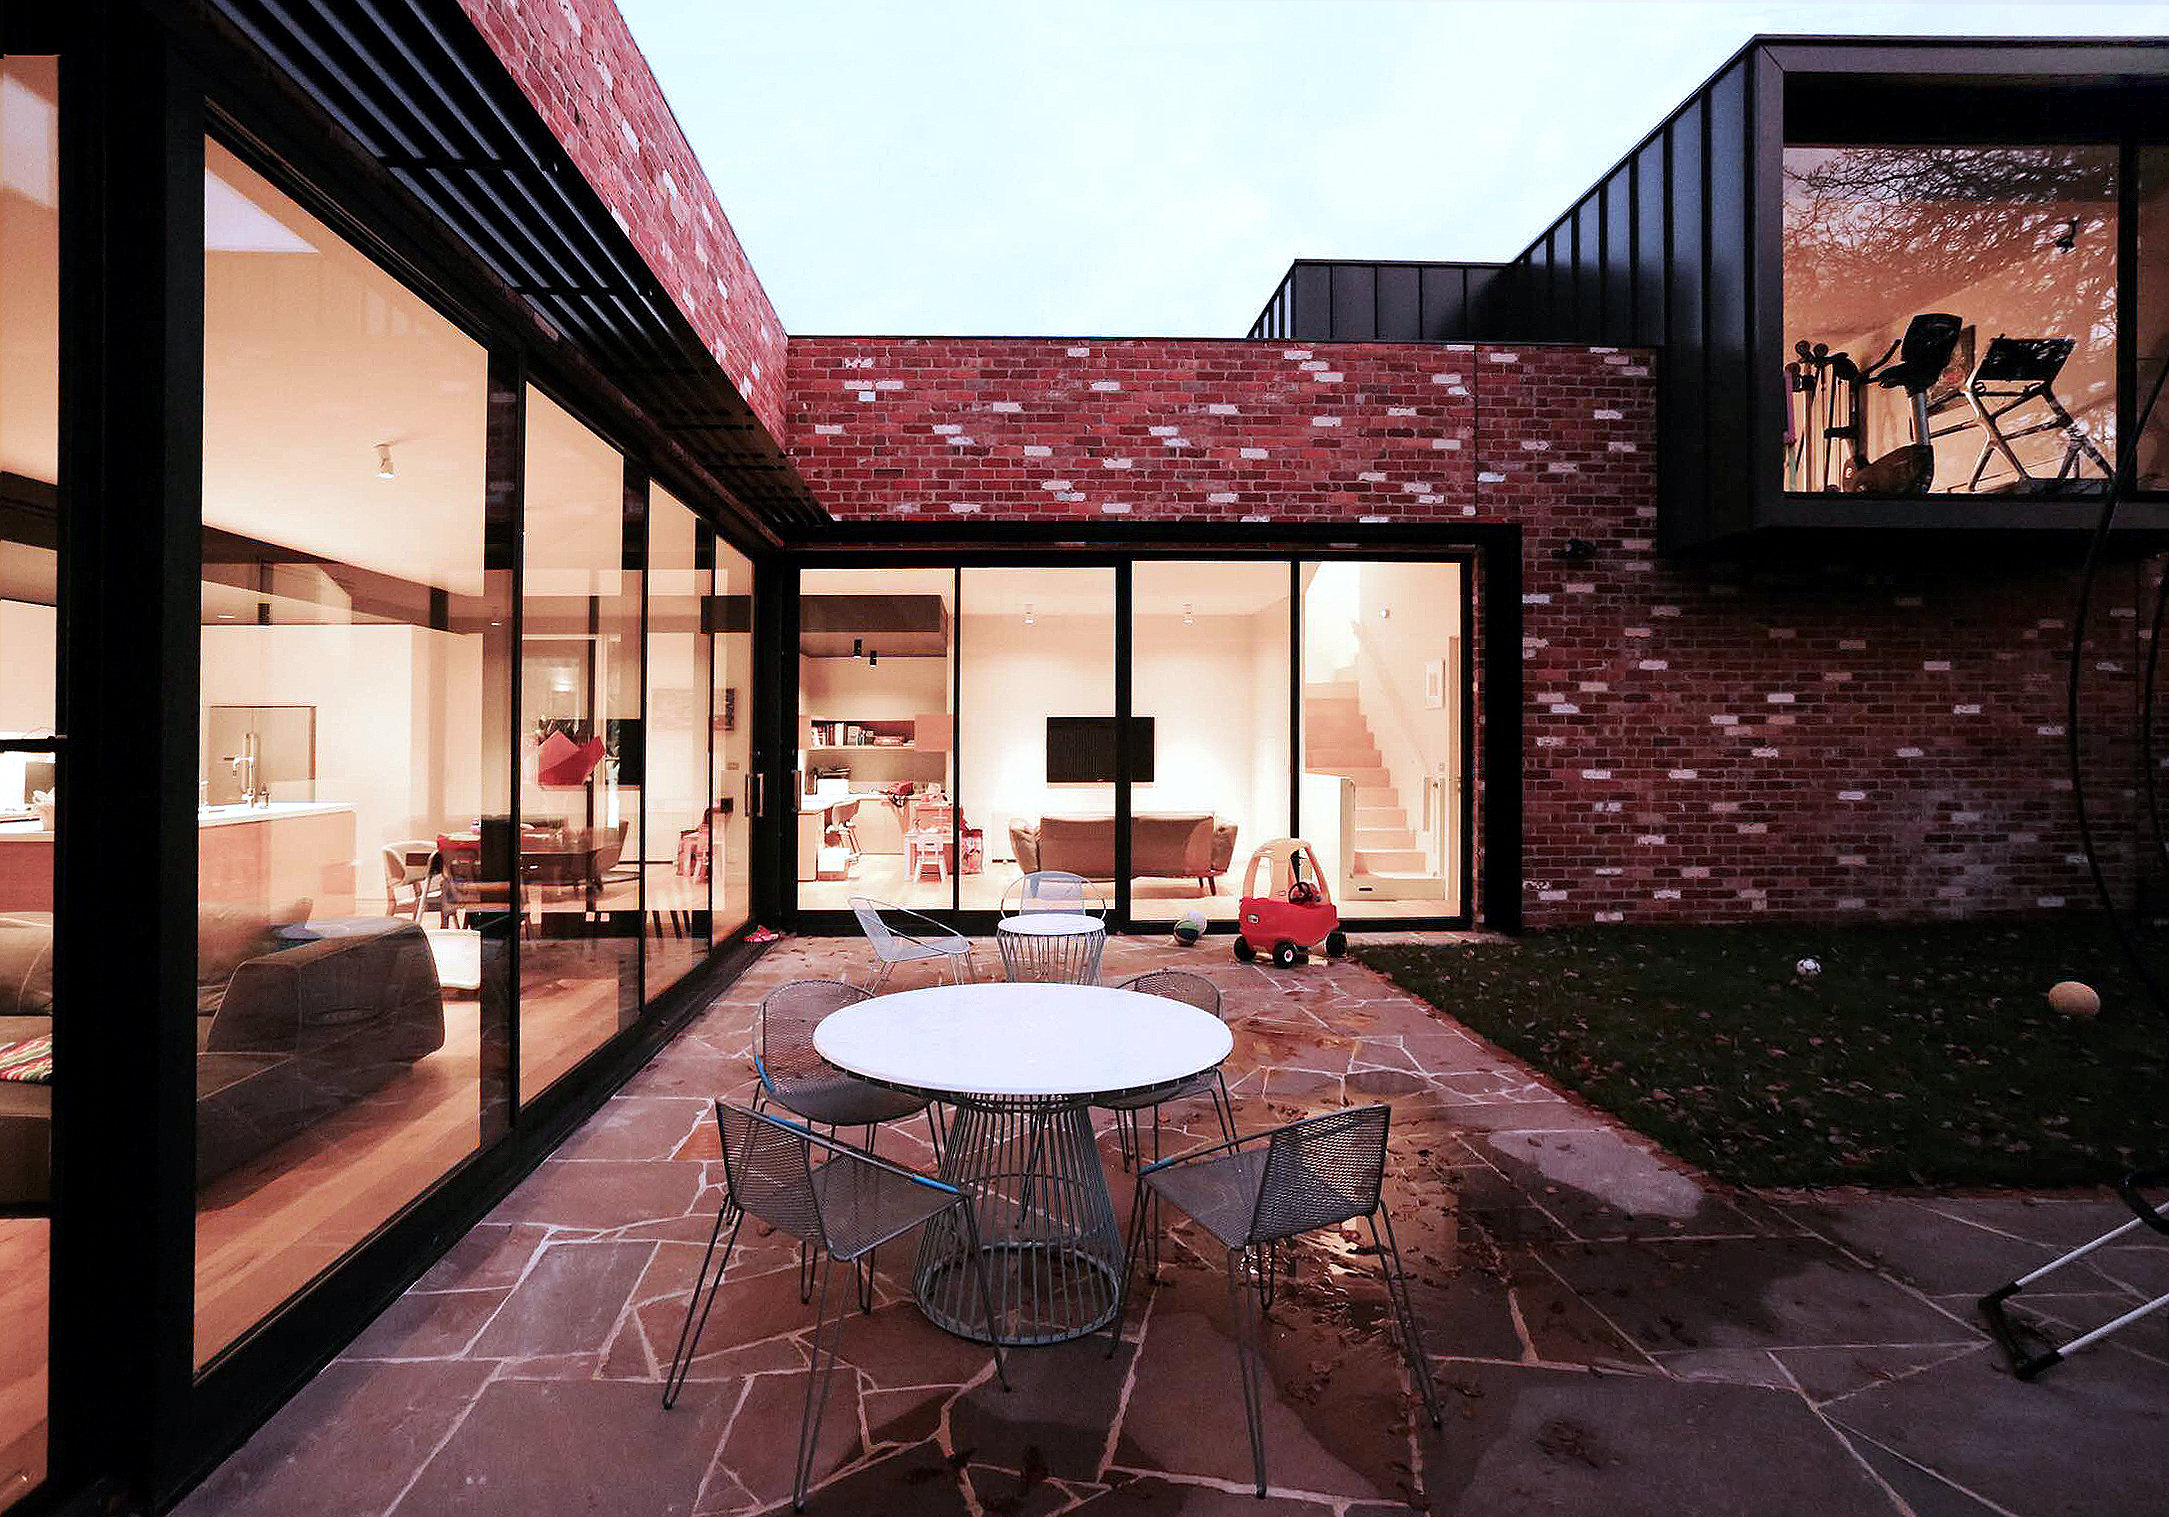 Crocker Street House by Moloney Architects (via Lunchbox Architect)